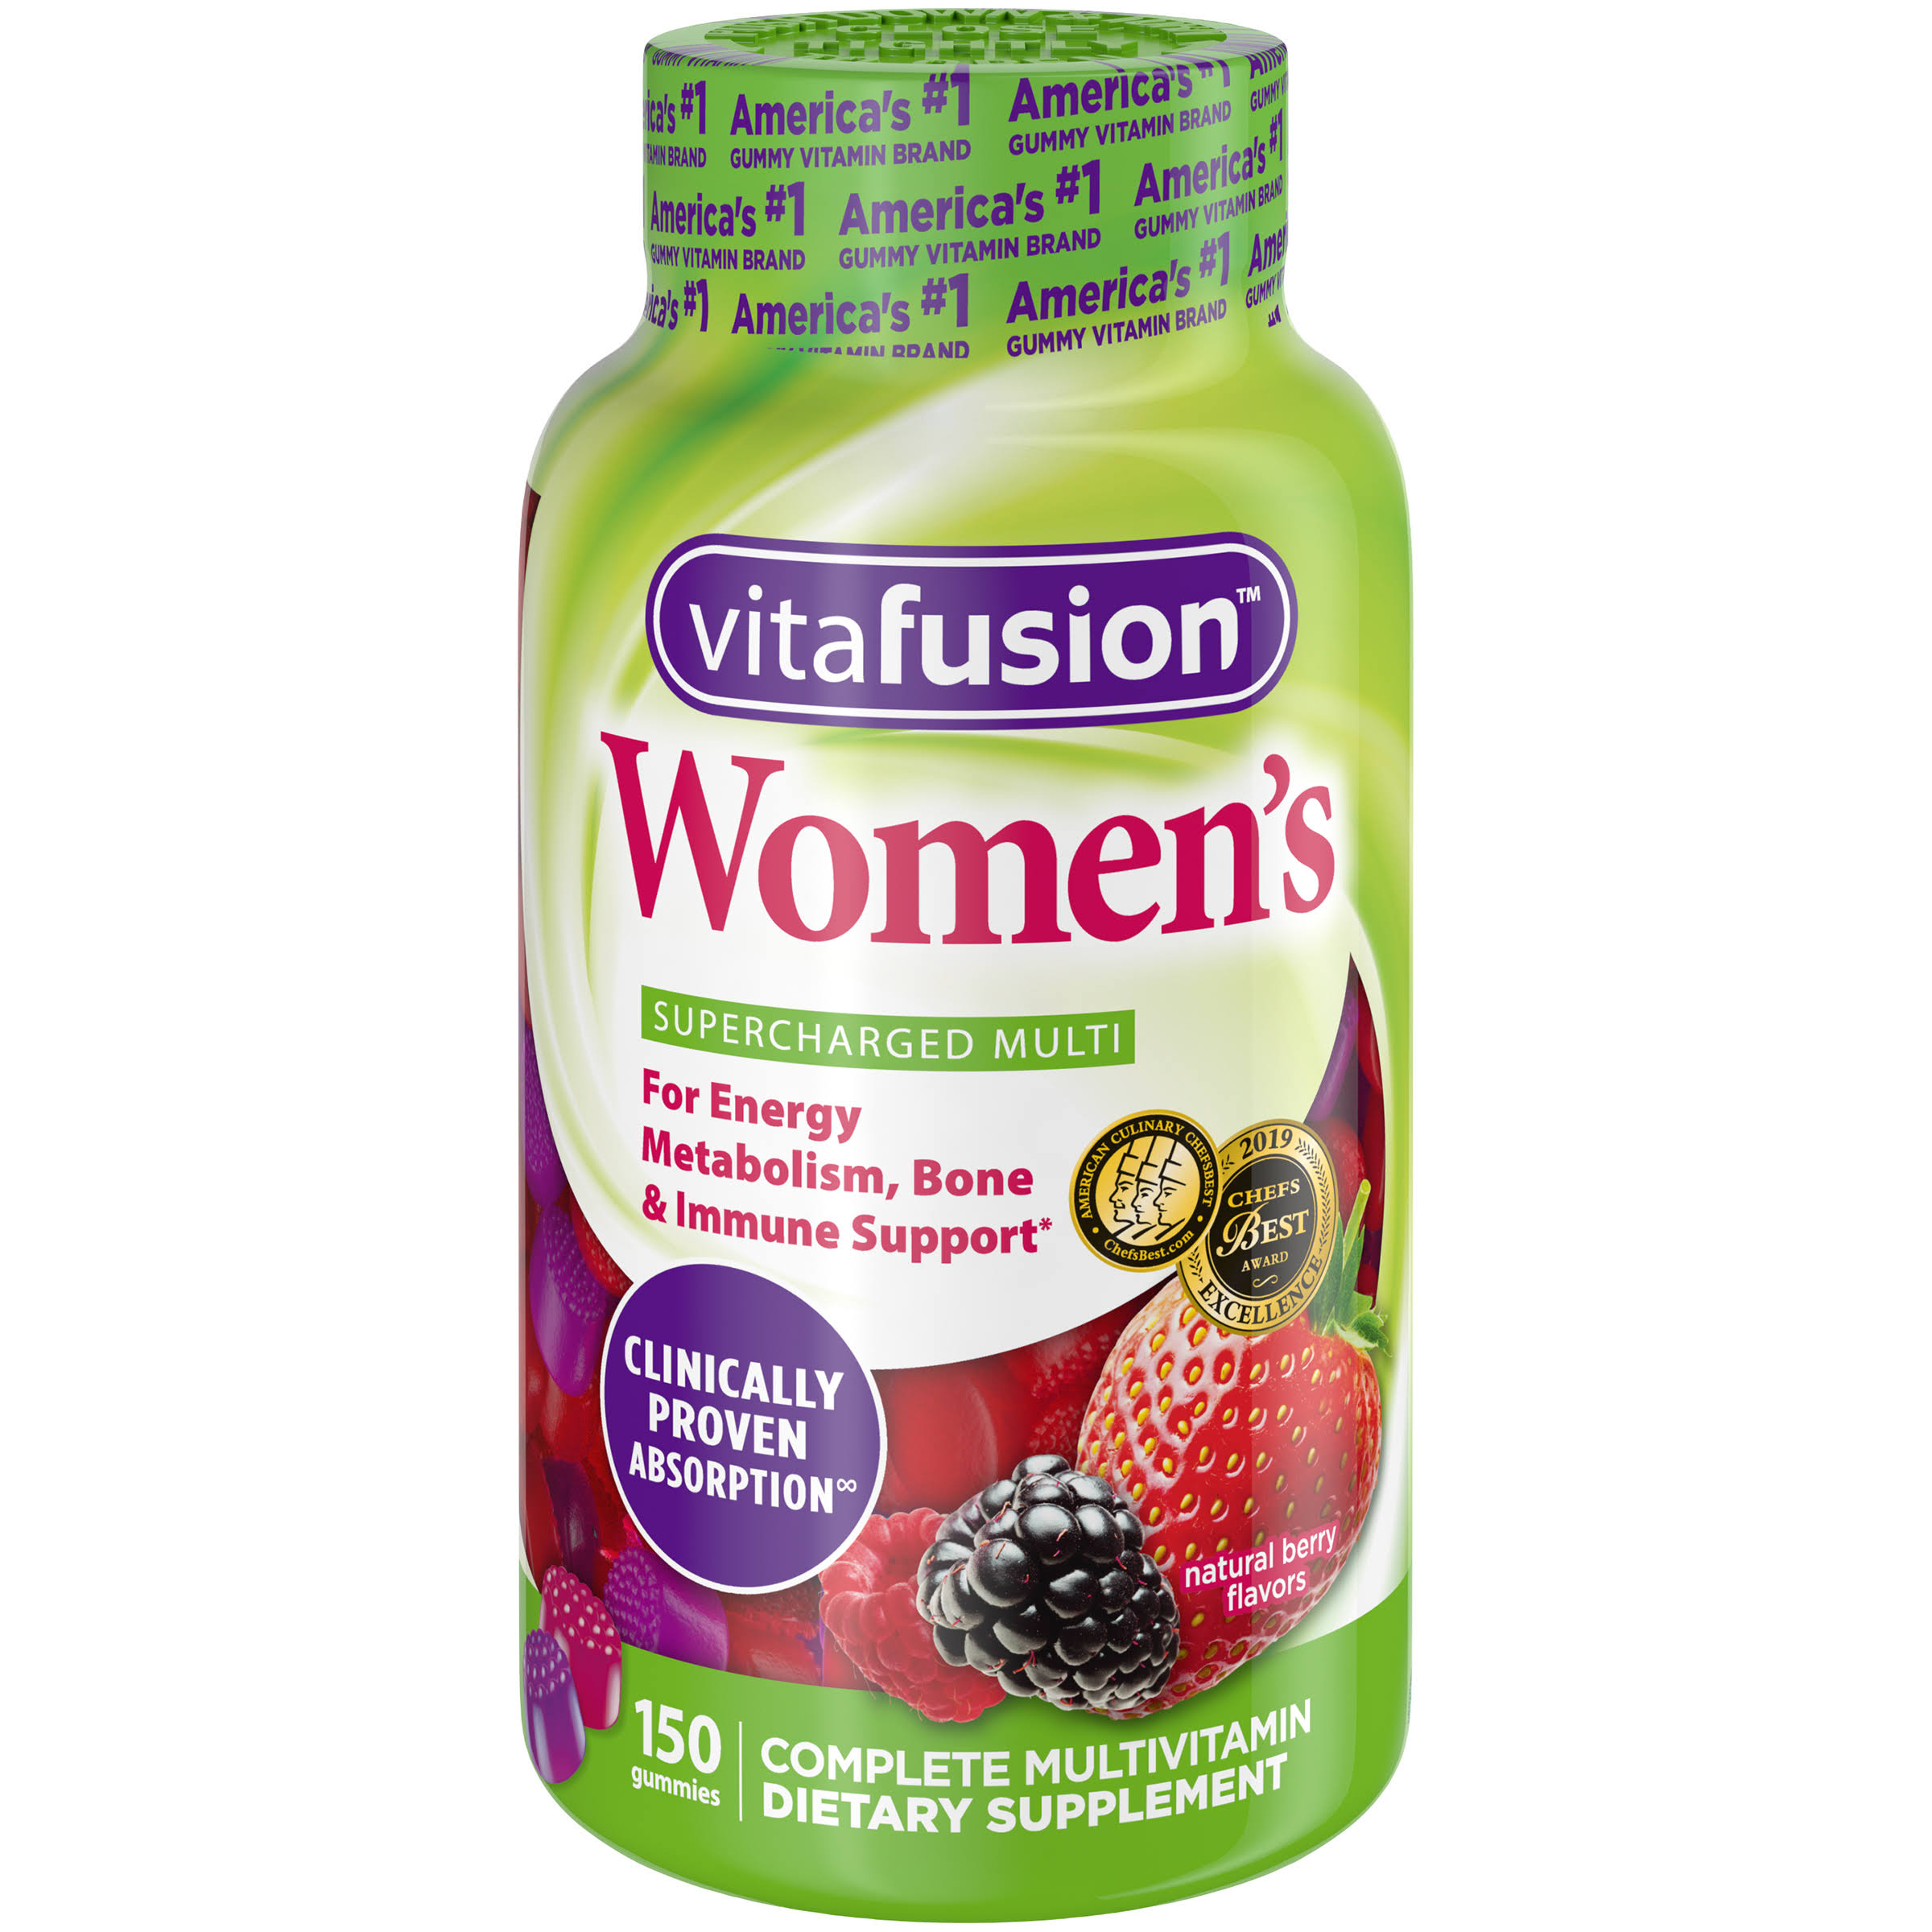 Vitafusion Women's Gummy Vitamins - Natural Berry Flavors, 150ct